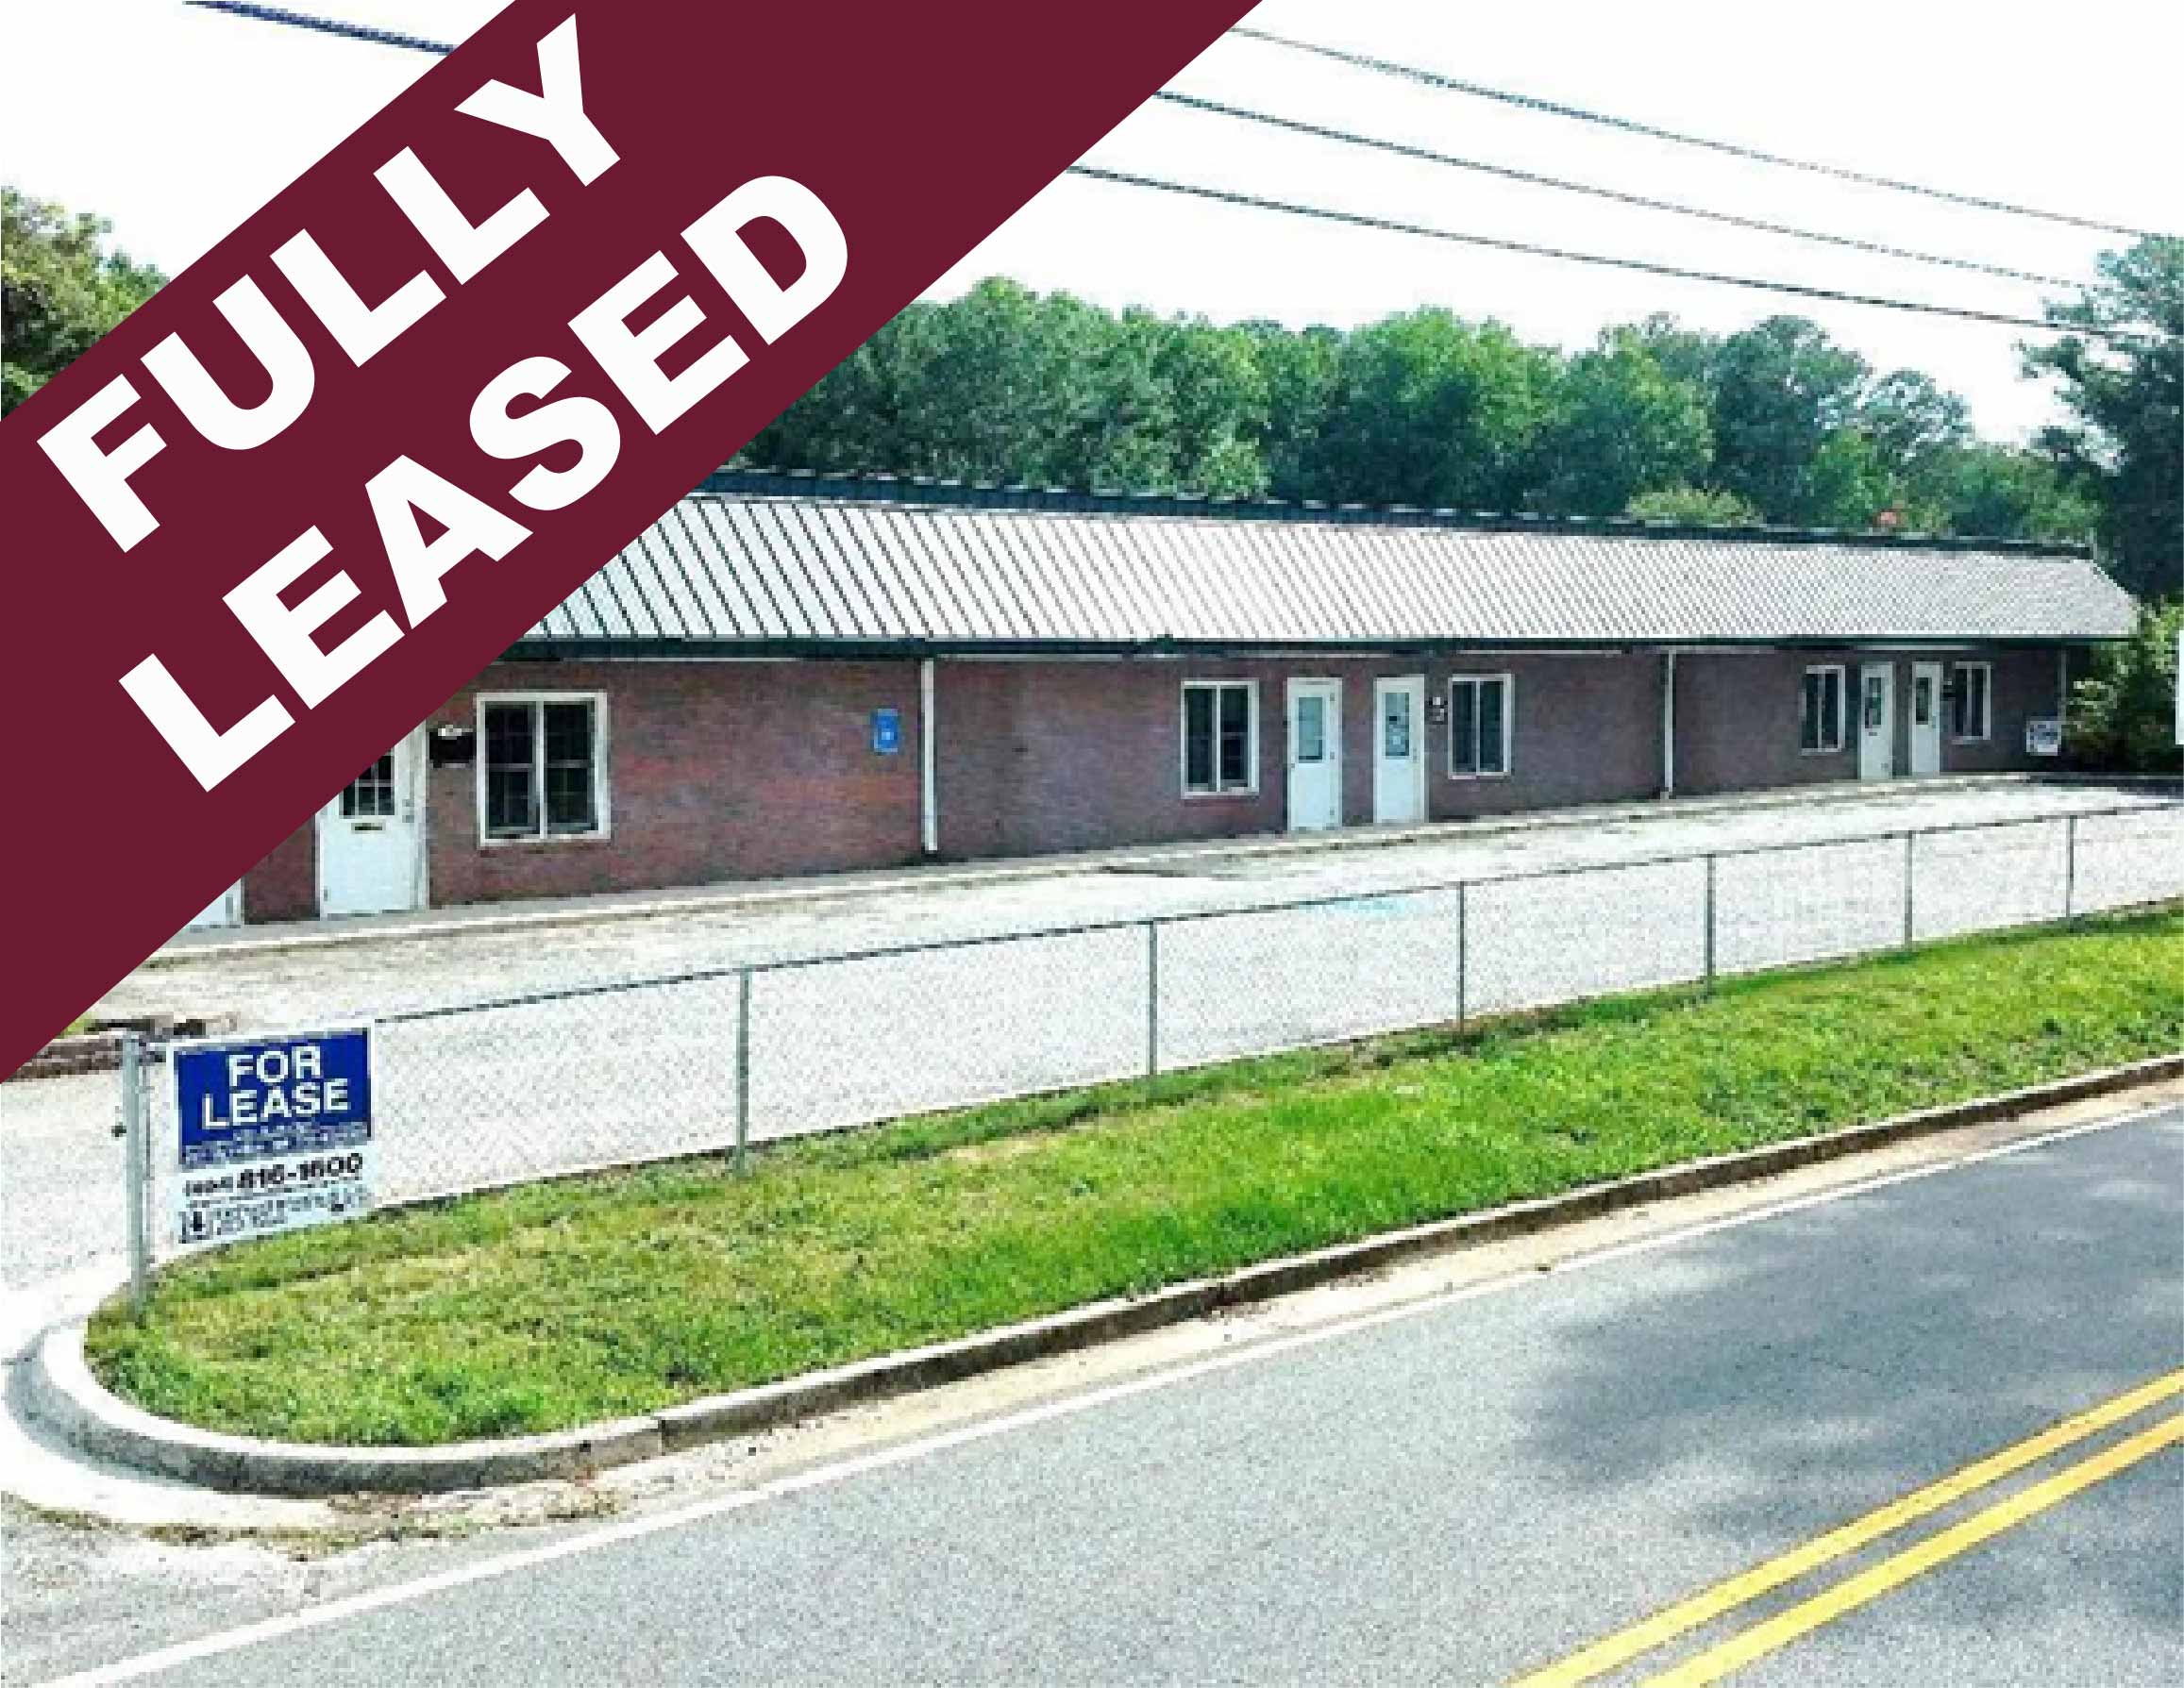 FULLY LEASED: 878 Kurtz Road, Marietta, GA  30066